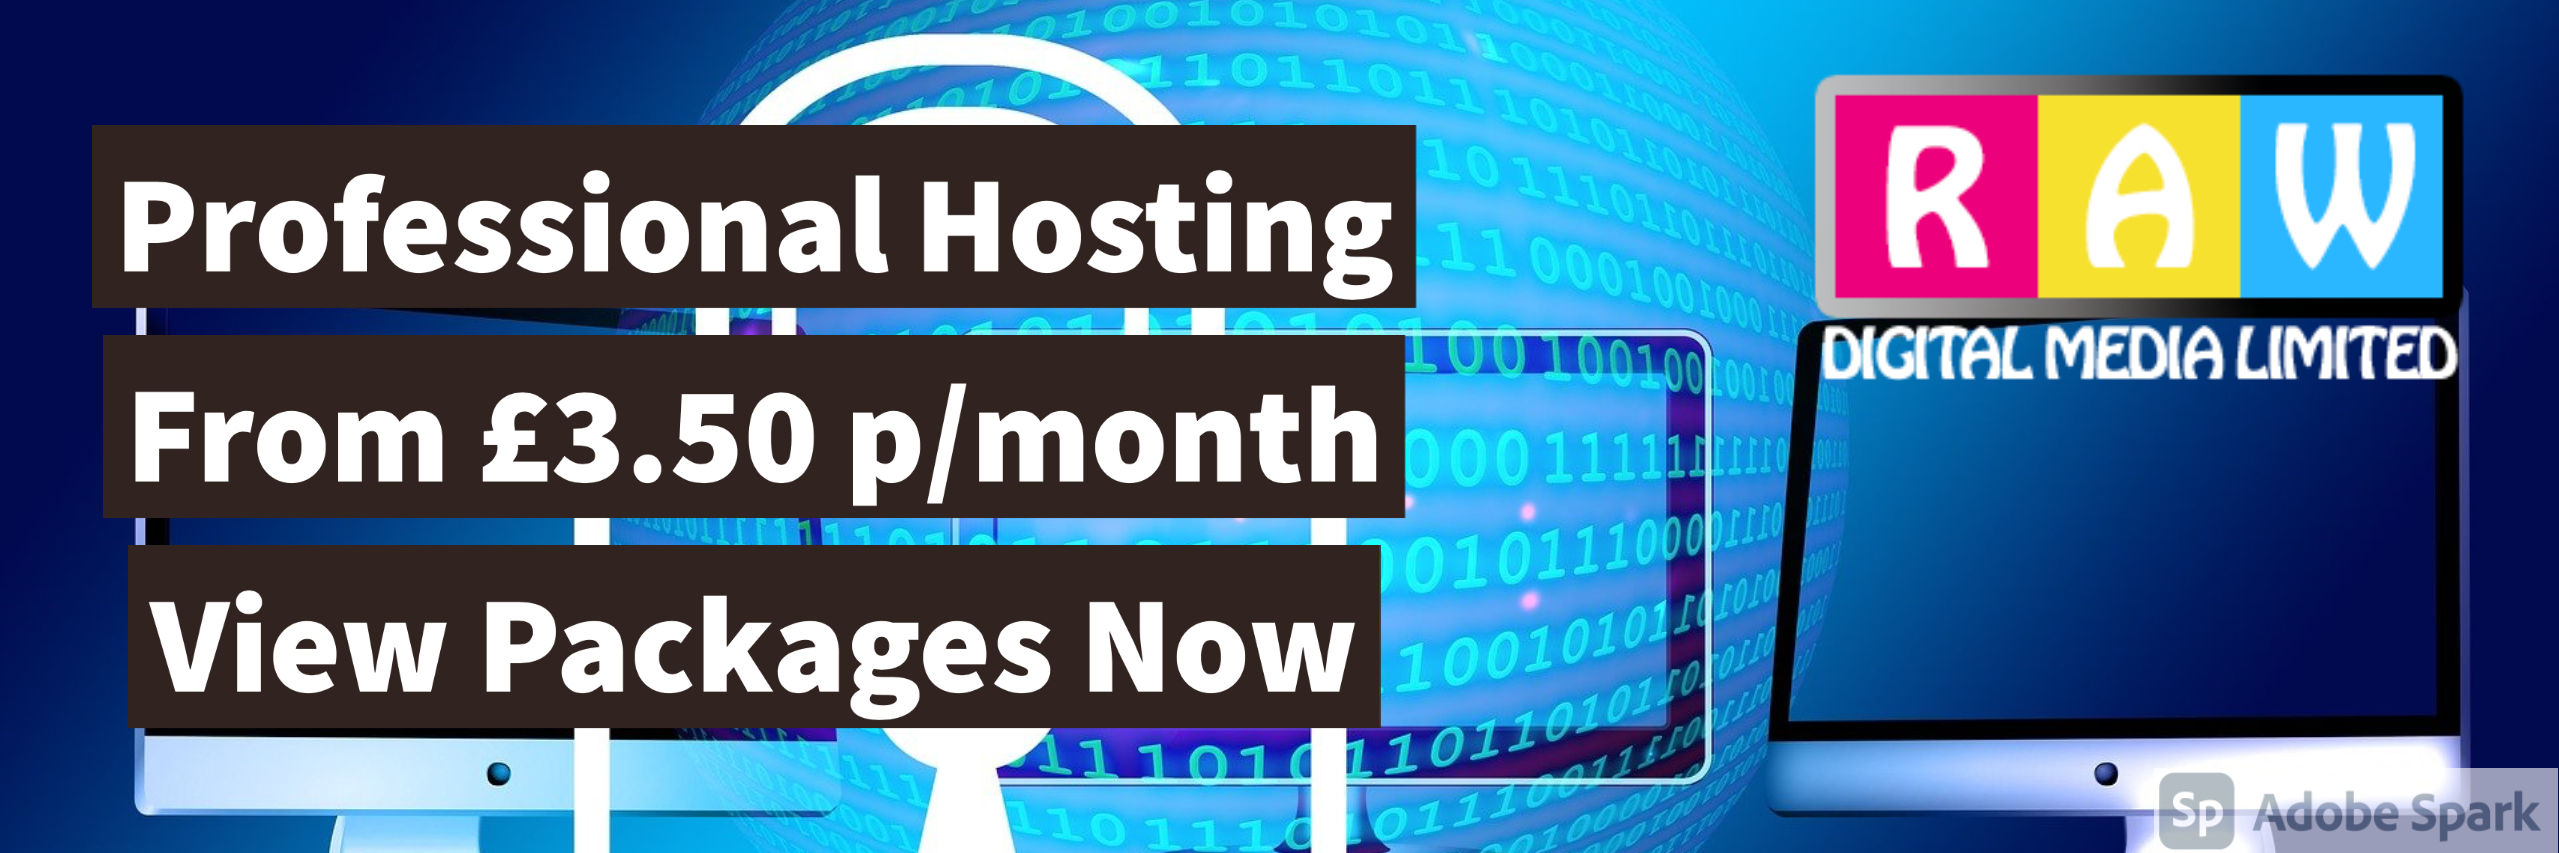 Professional Web Hosting From £3.50 p/month